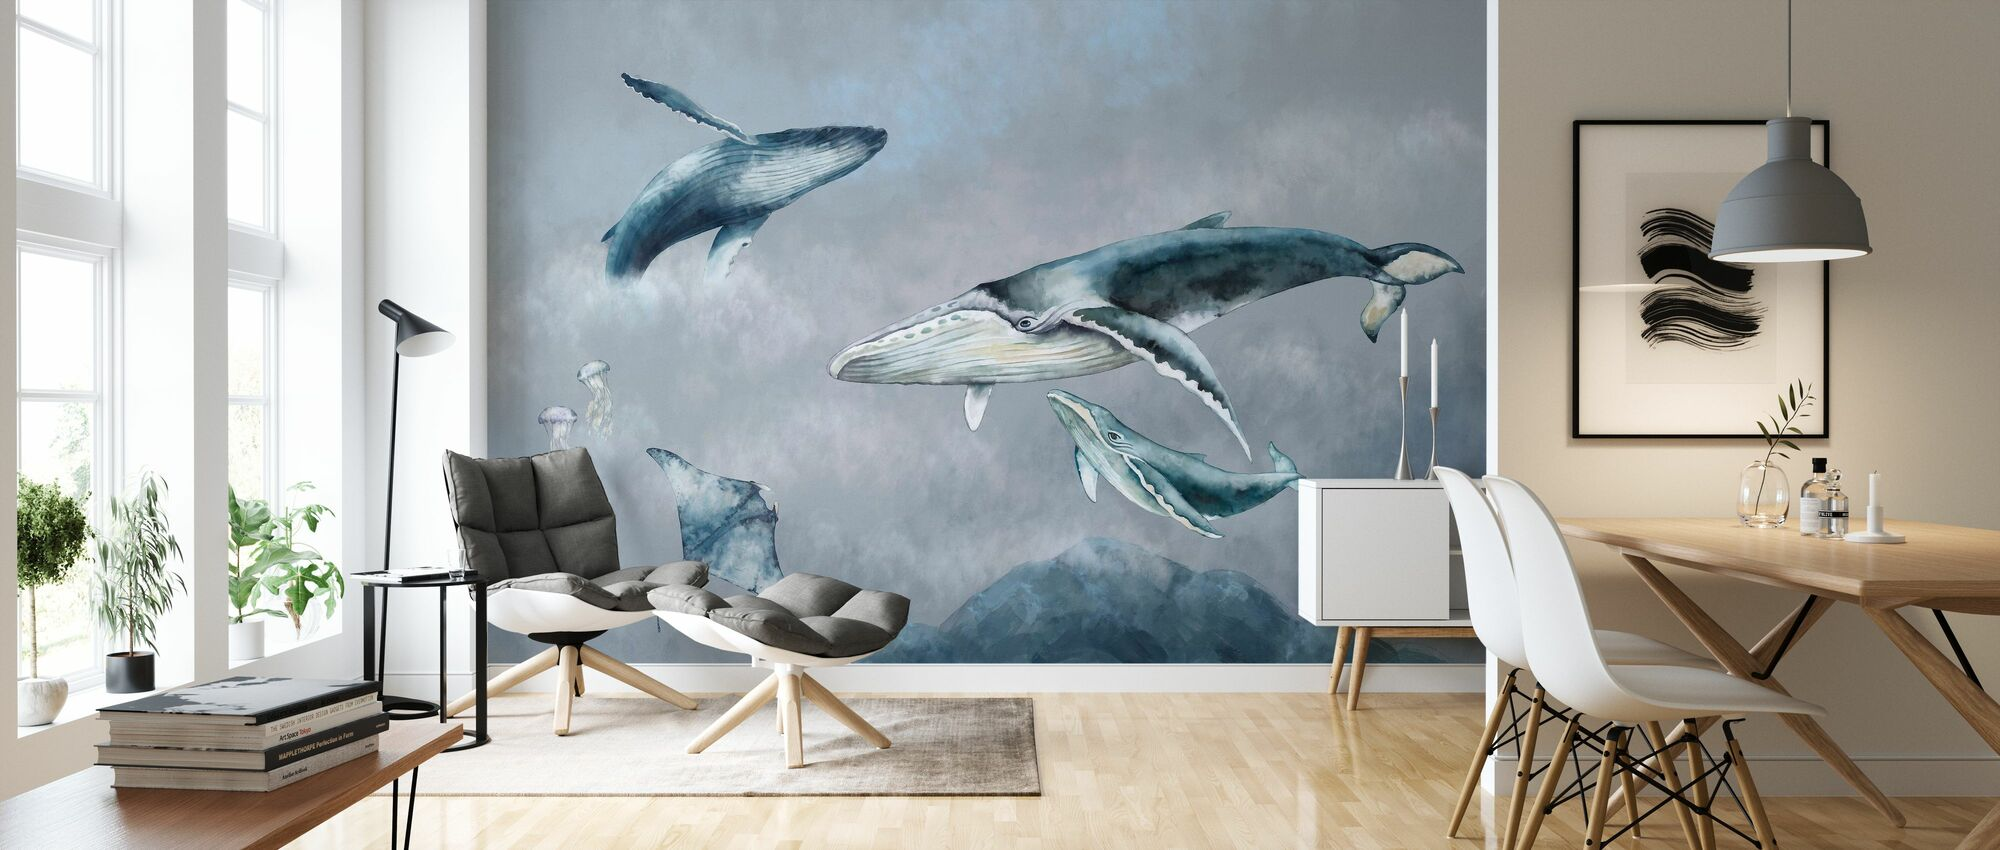 Whale Friends - Wallpaper - Living Room